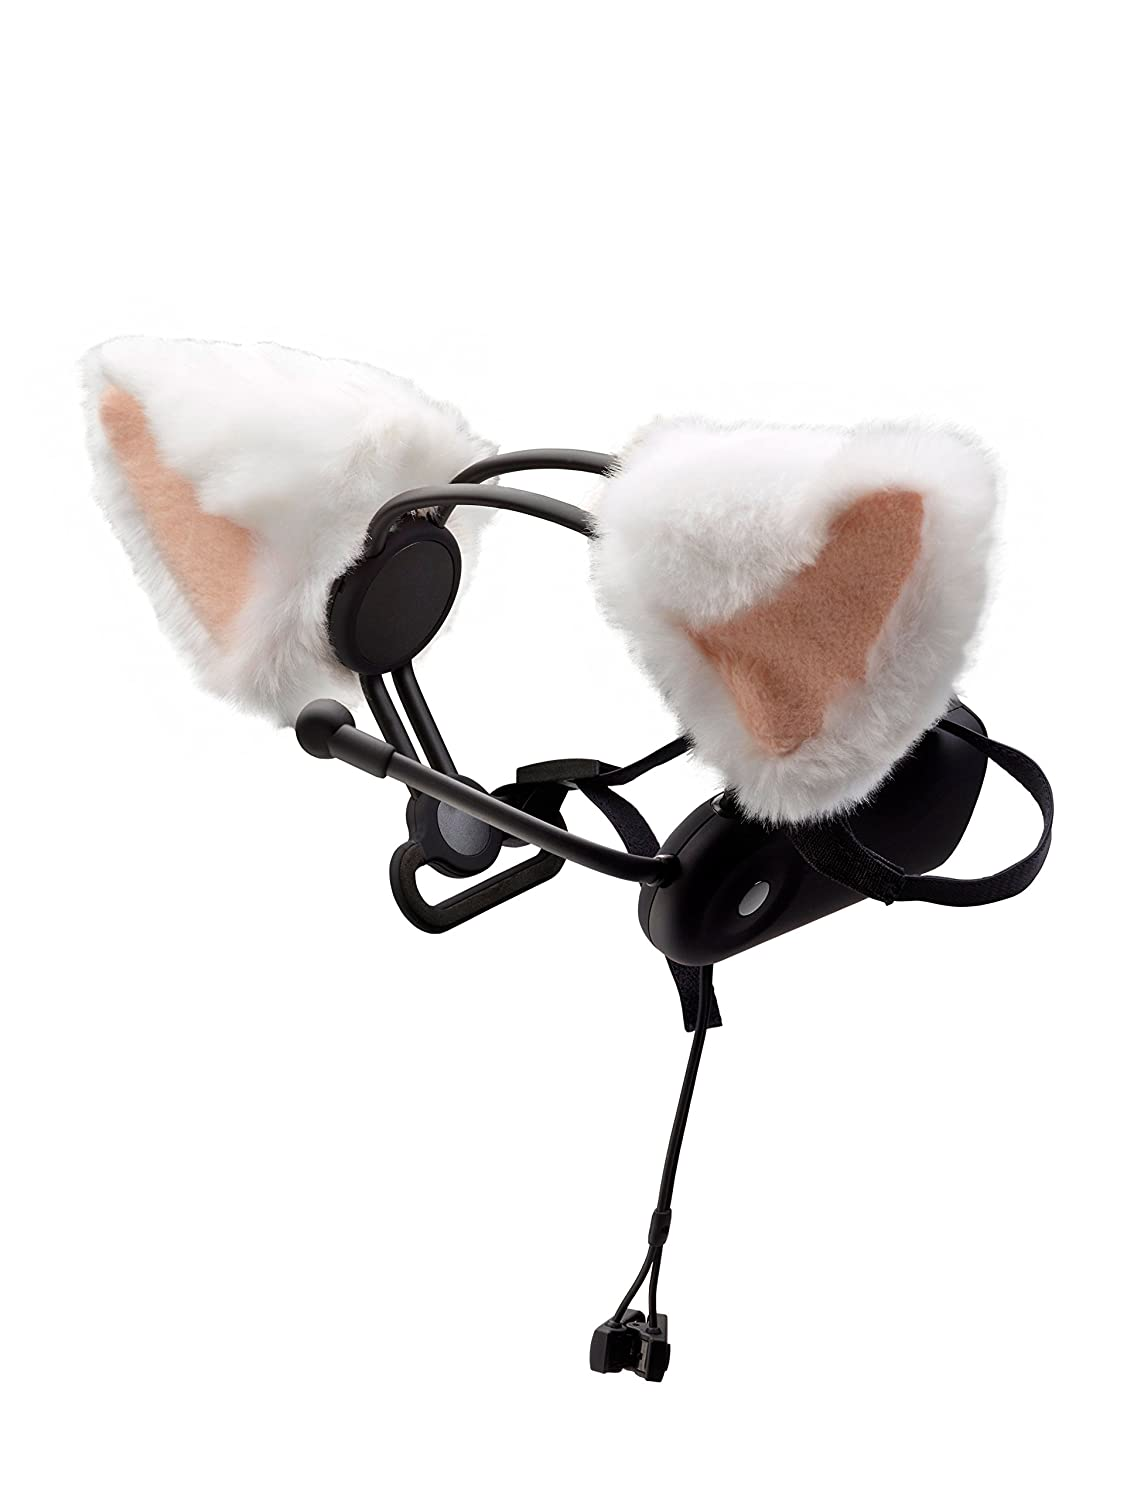 One Color NeuroSky 80037-001 Discontinued by manufacturer Necomimi Brainwave Cat Ears Novelty